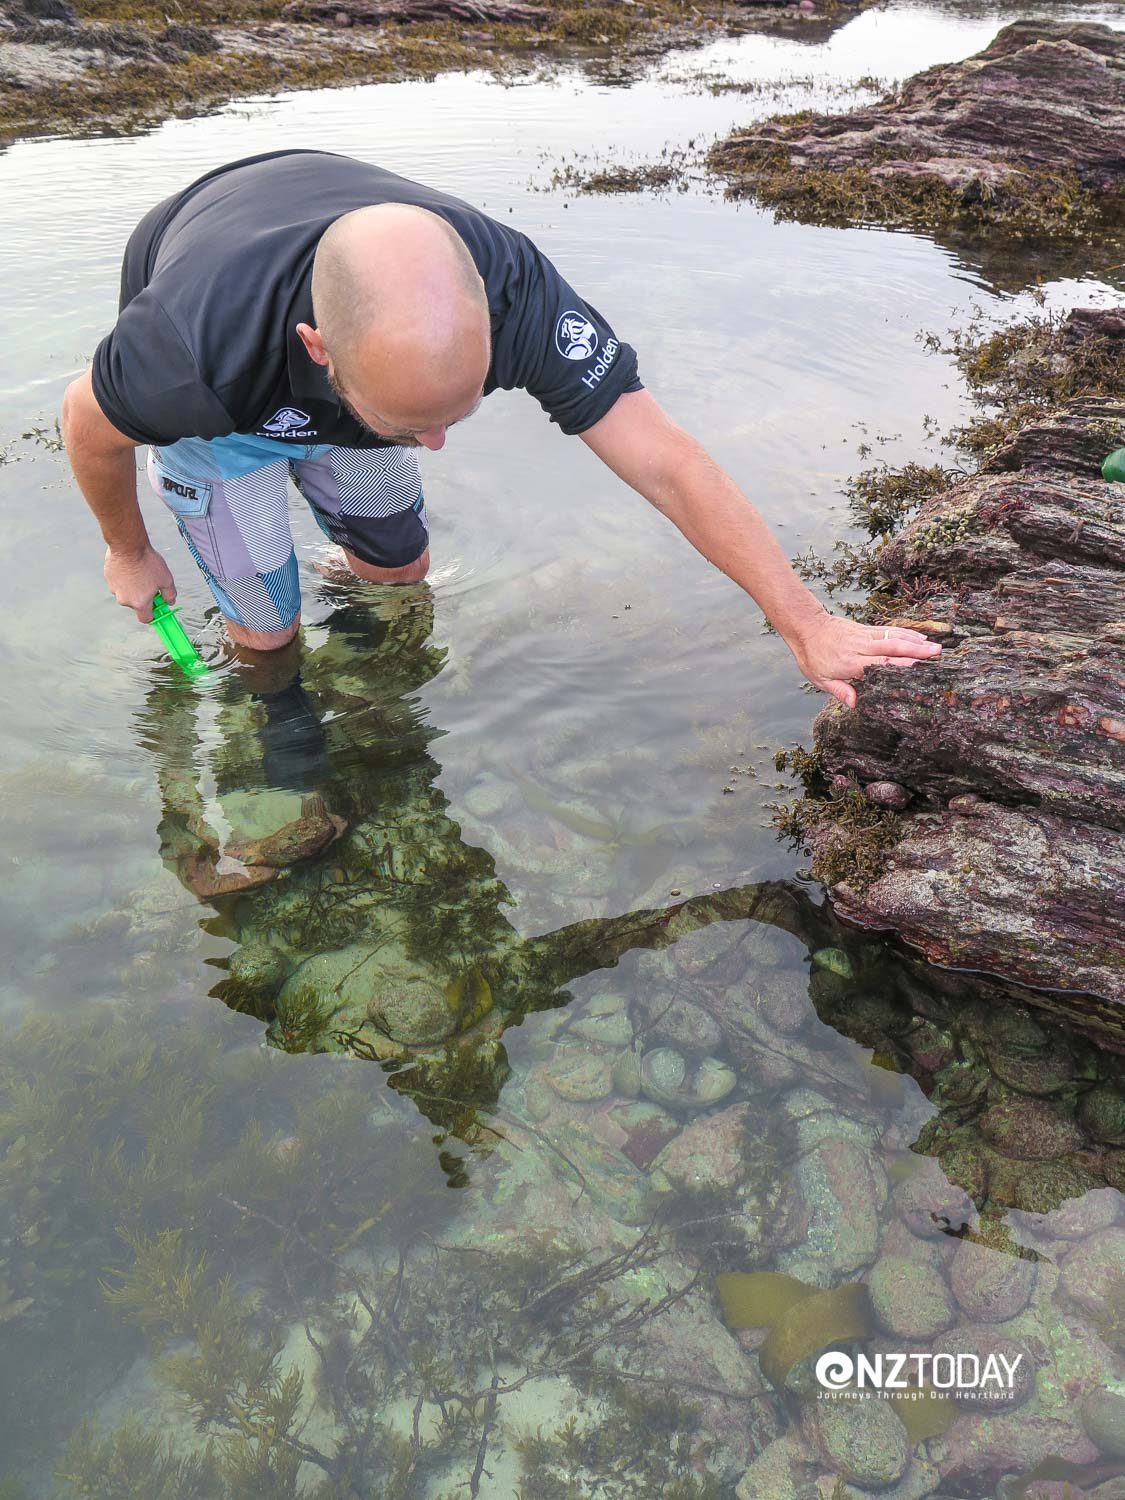 Several sea reserves allow fishing for consumption - and paua can be taken in knee deep water